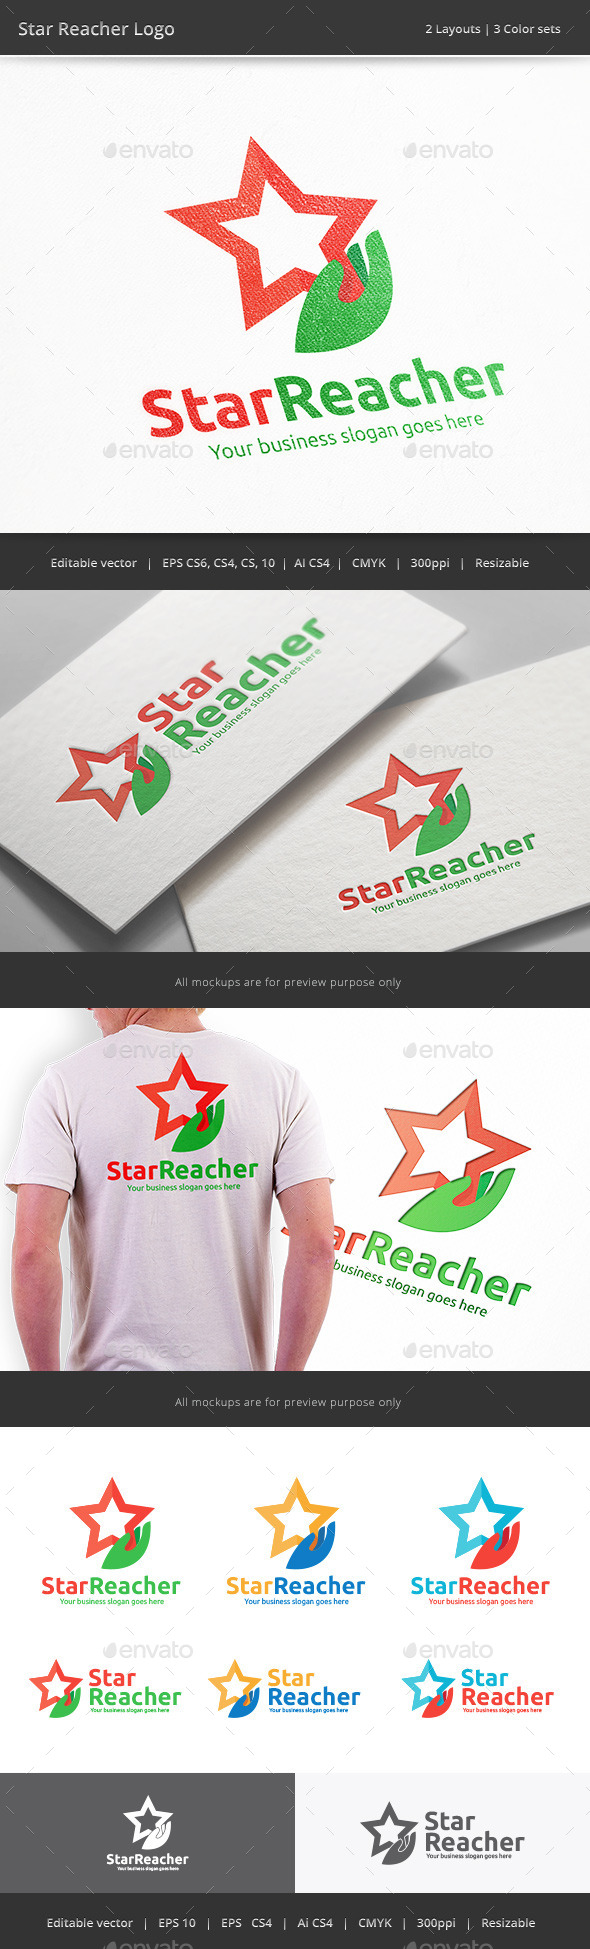 Star Reacher Hand Logo